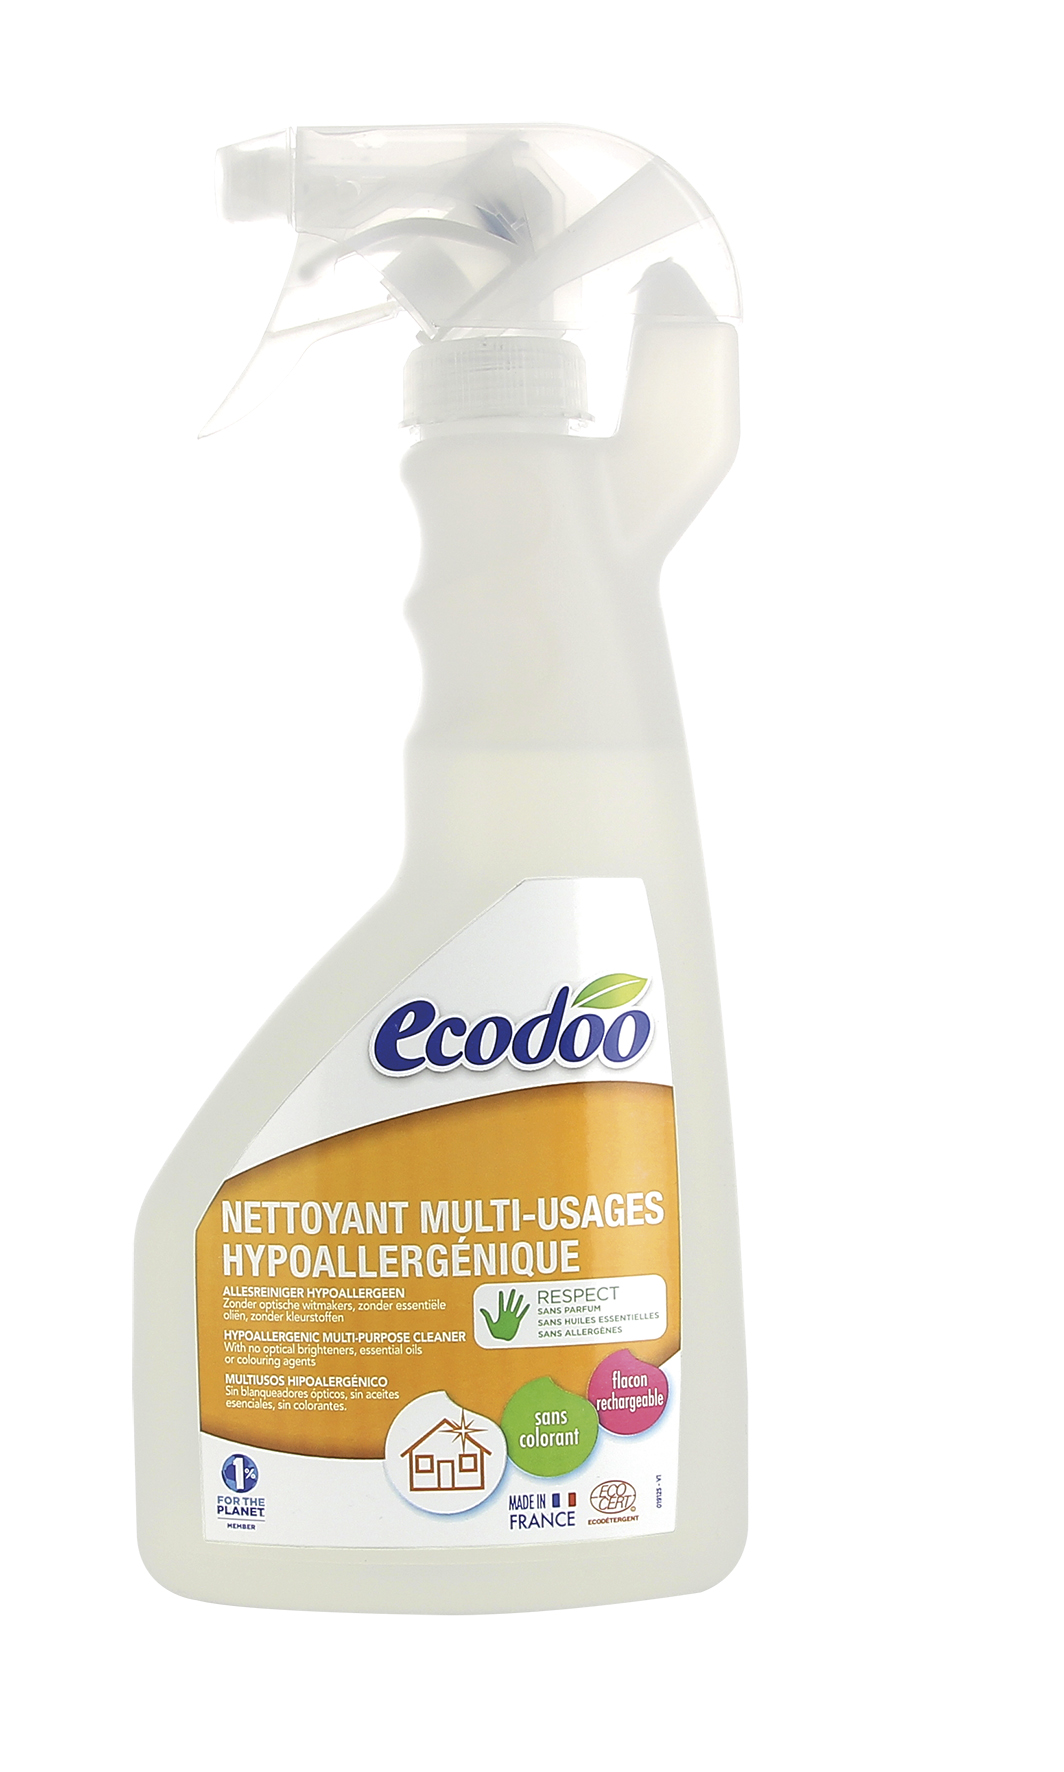 Nettoyant hypoallergénique multi-usages, Ecodoo (500 ml)